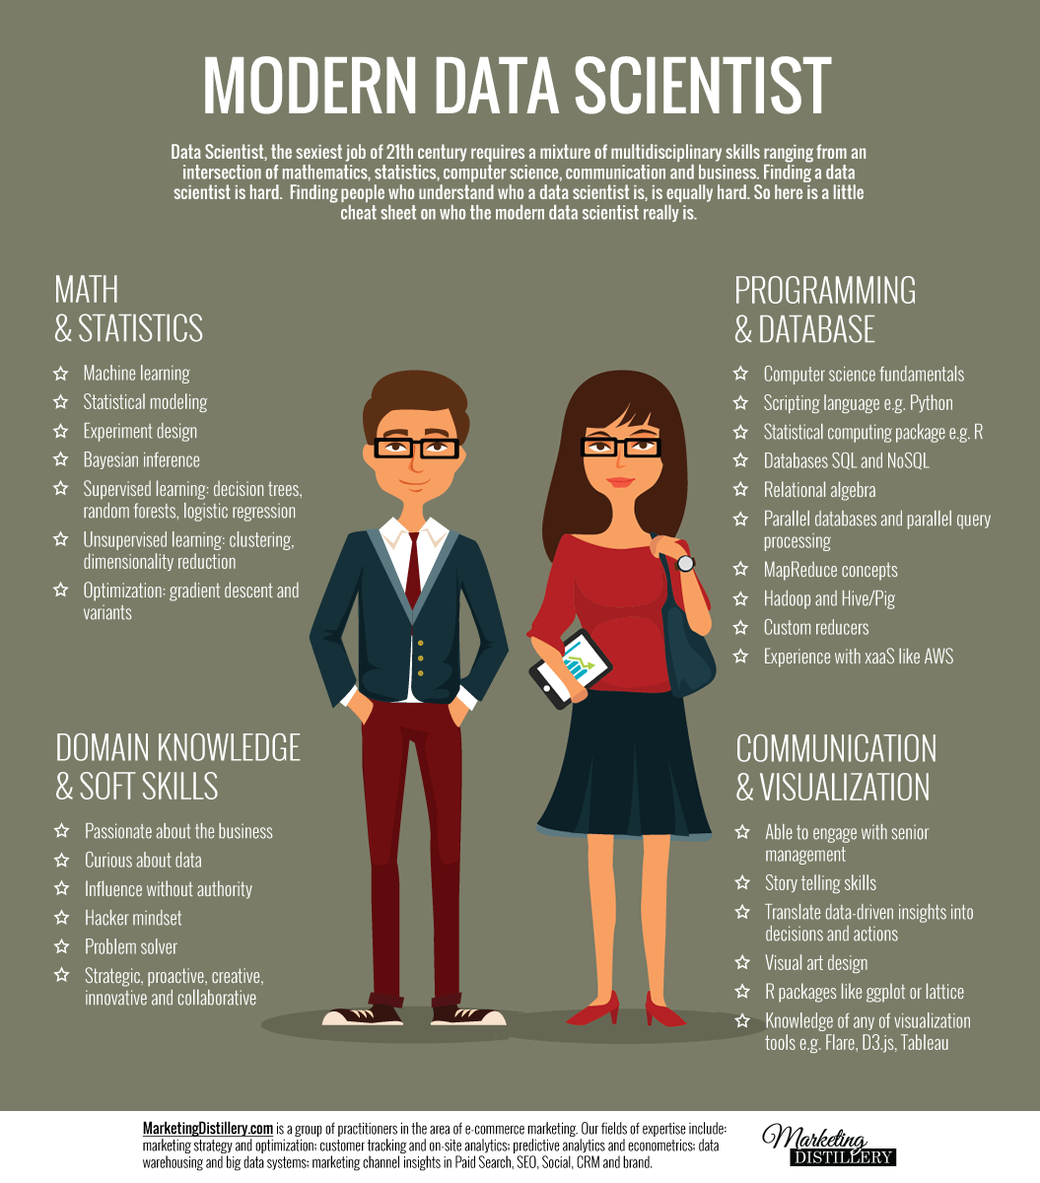 A long-term Data Science roadmap which WON'T help you become